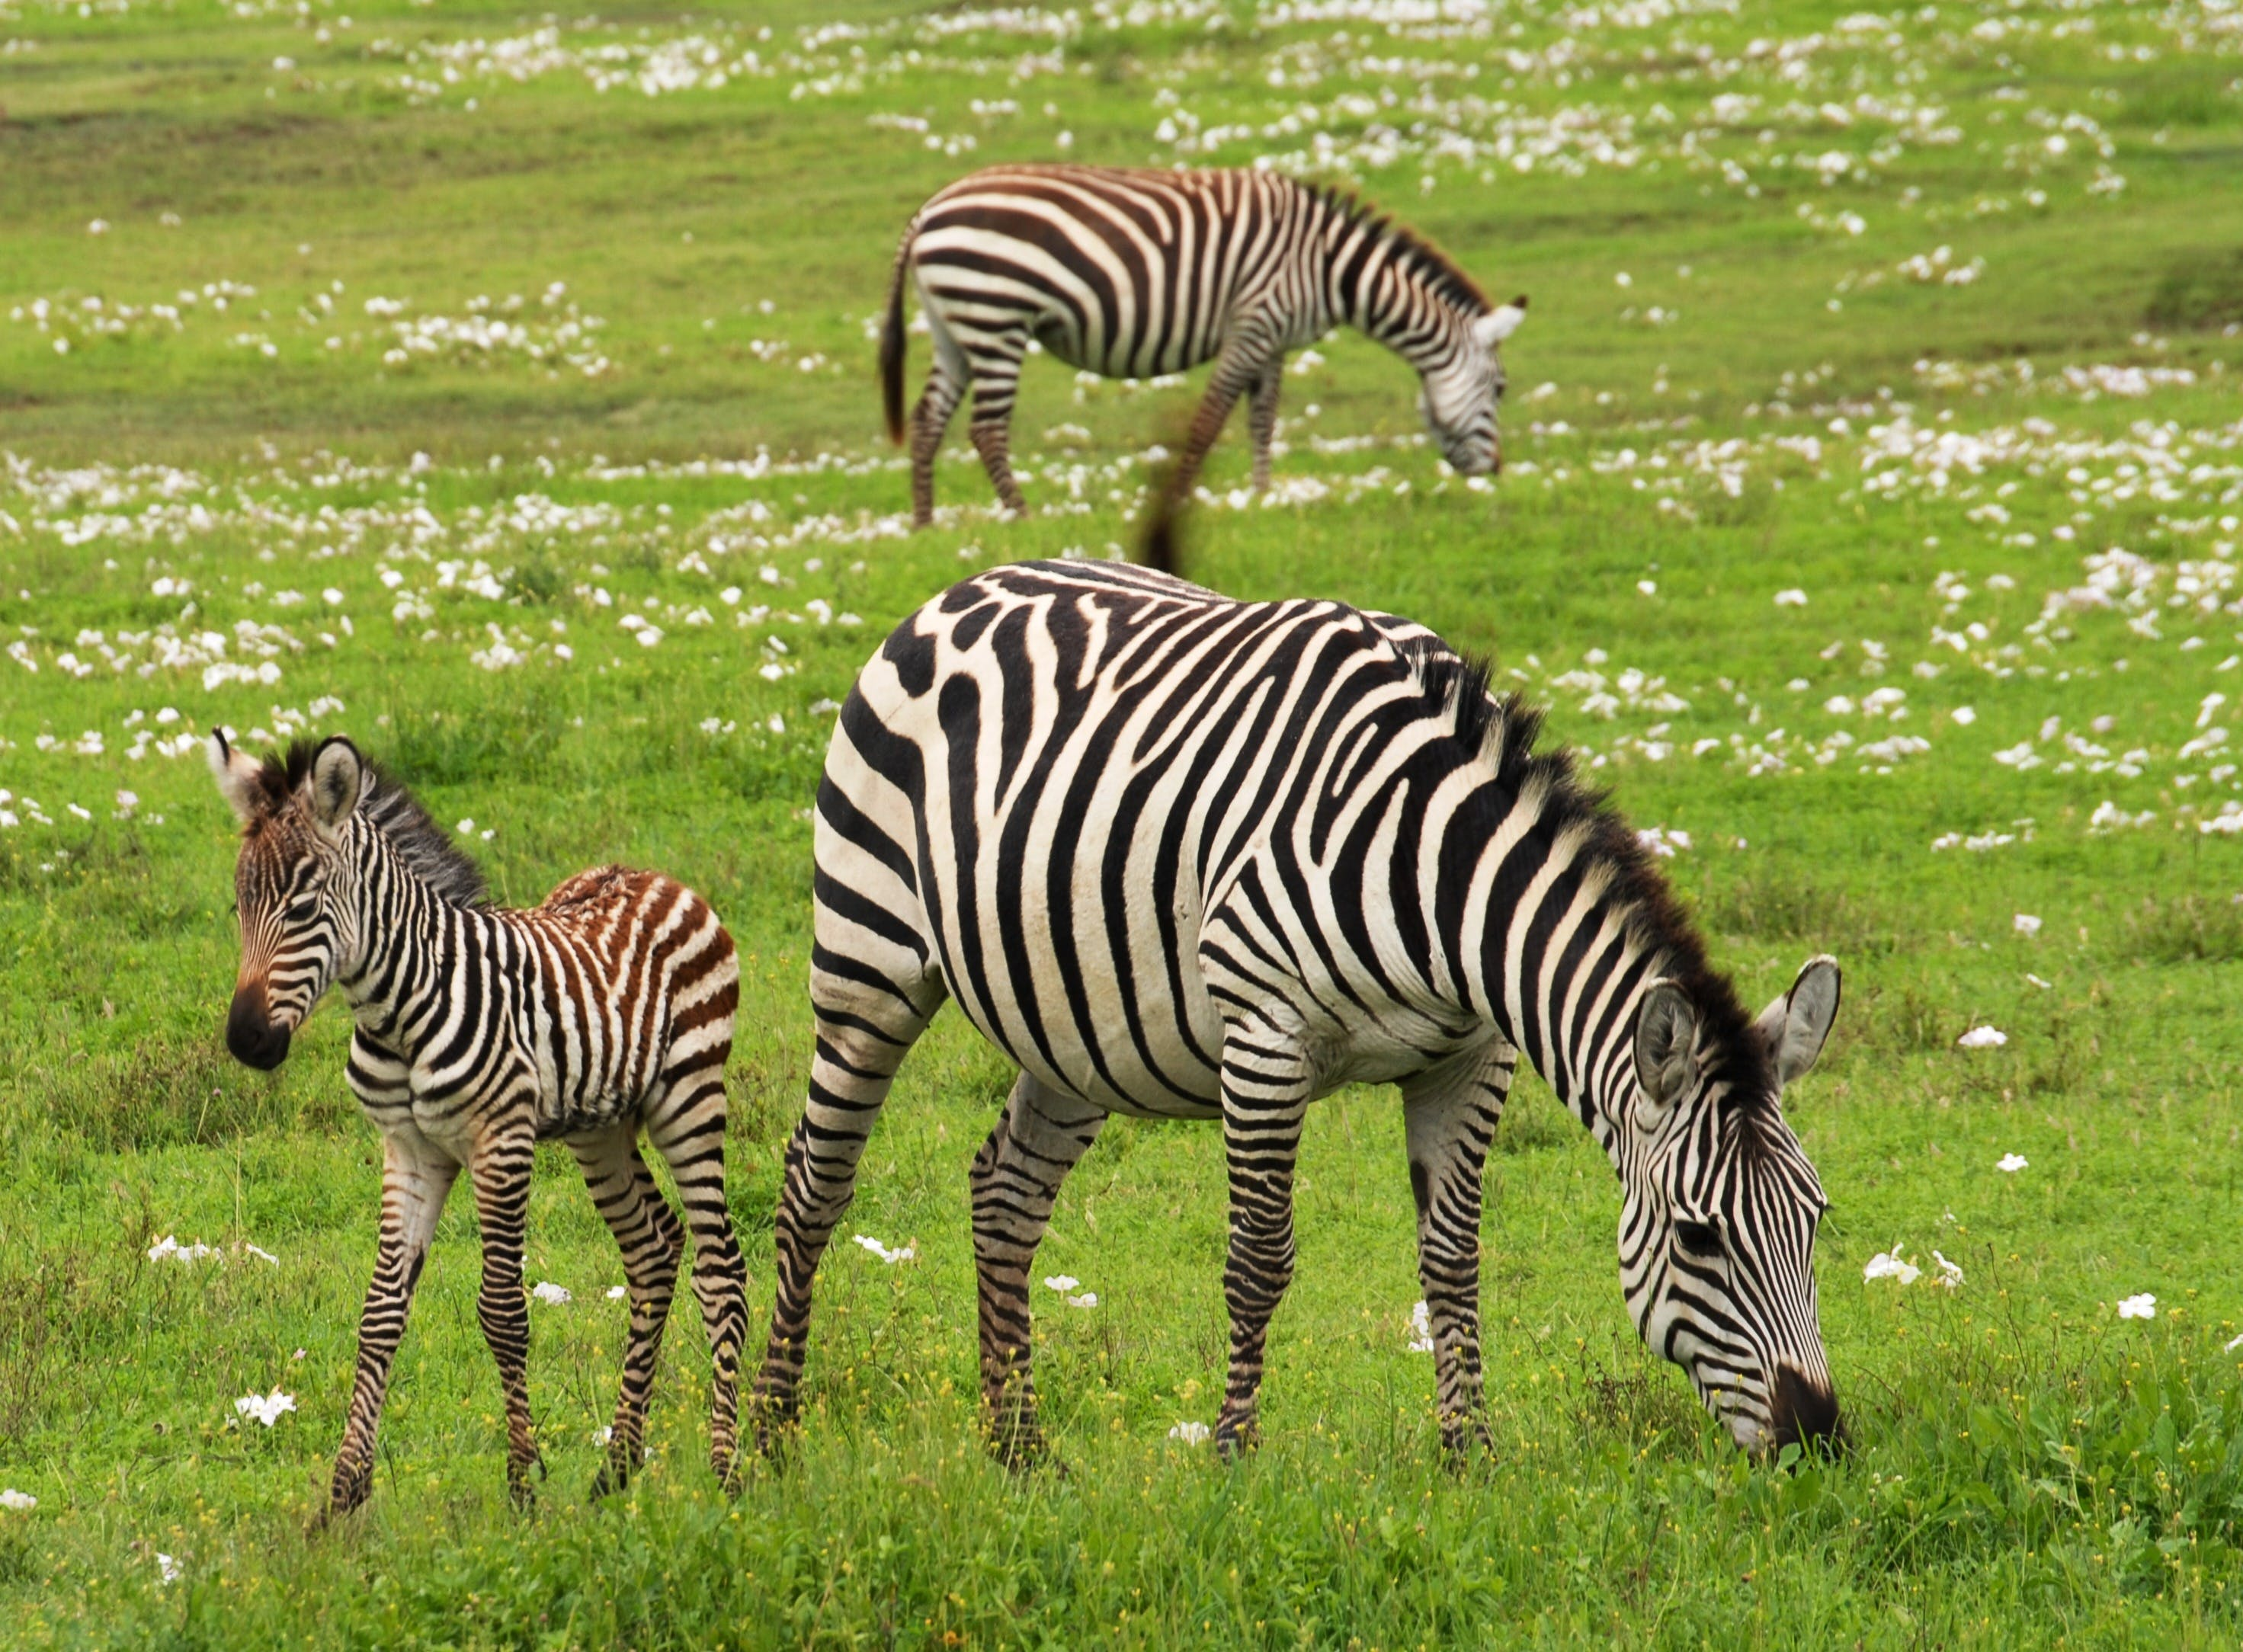 Photo of 3 Zebra on Green Grass Field